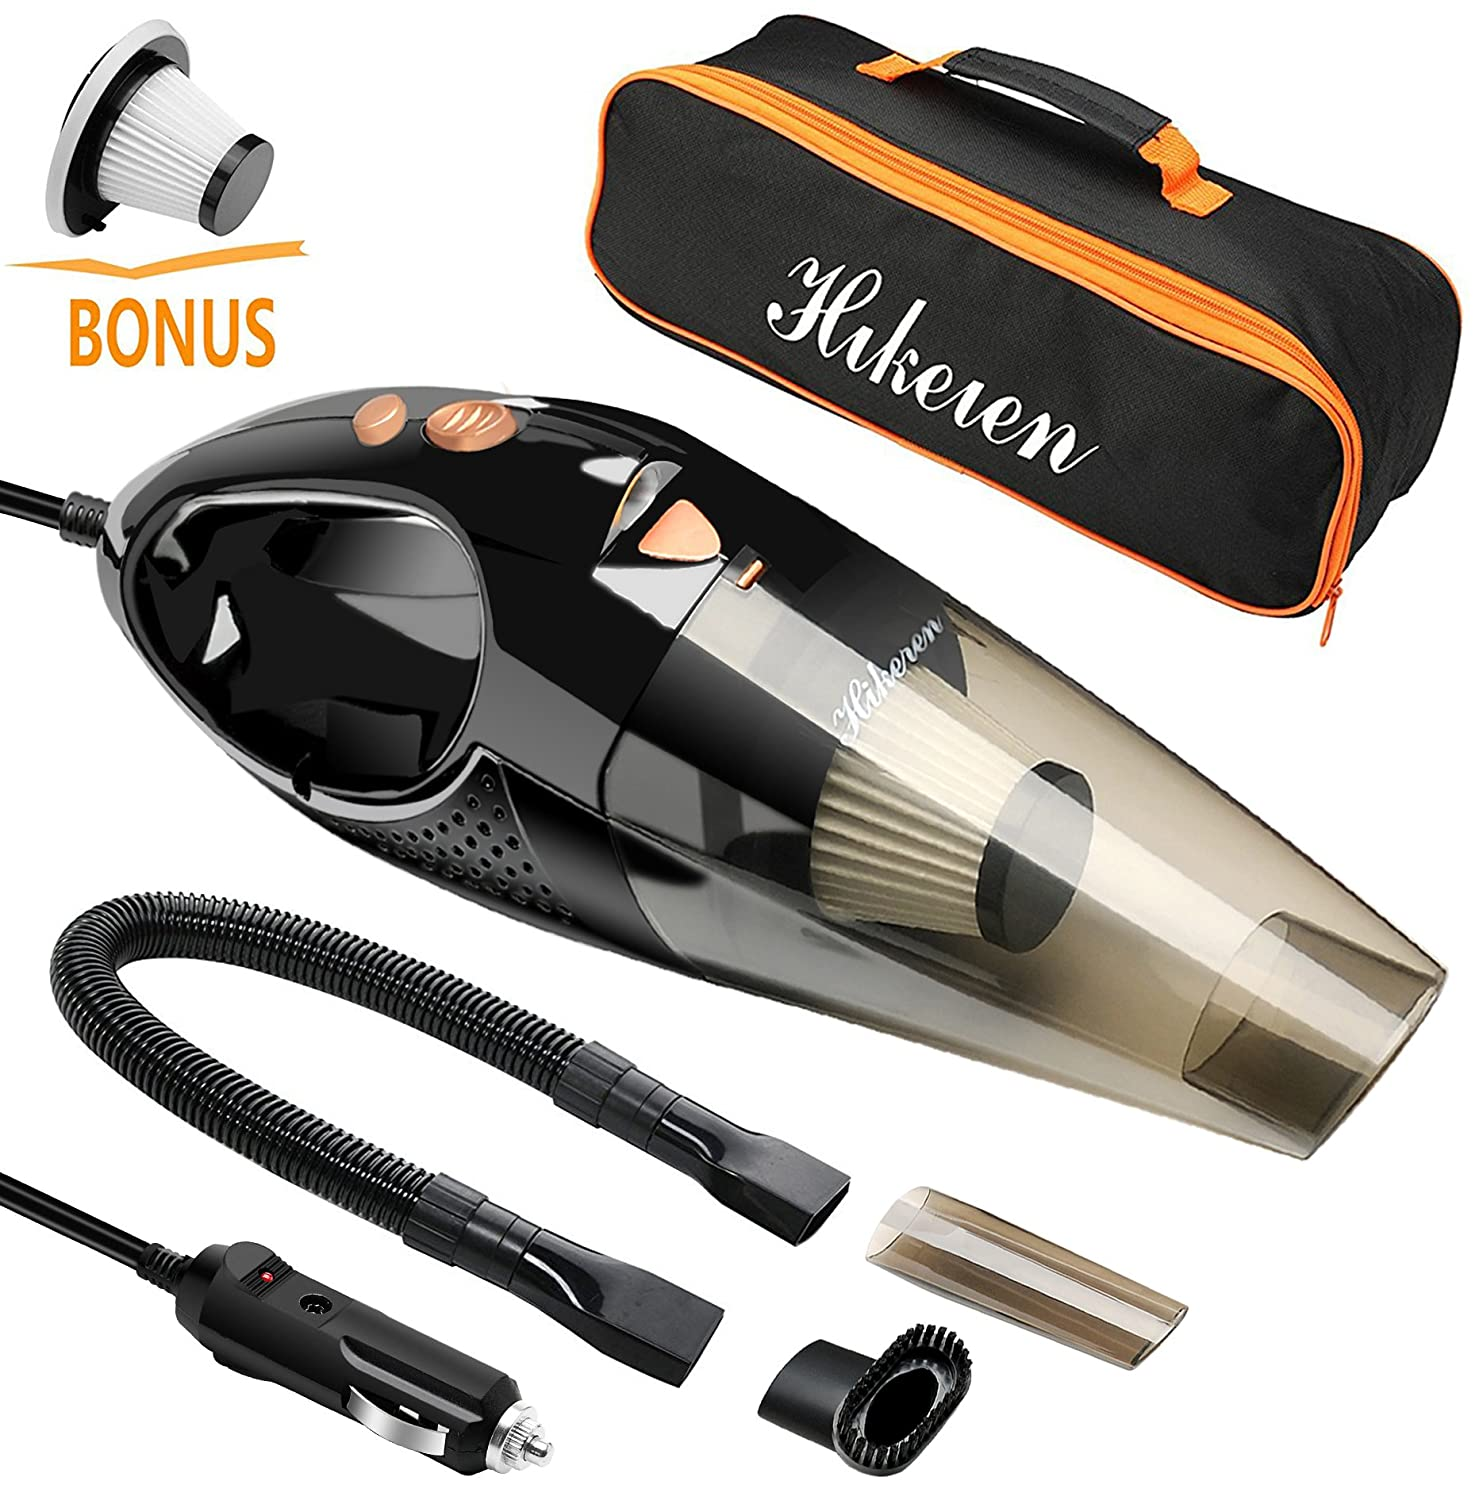 Car Vacuum Cleaner, HikerenWet & Dry Handheld Auto Vacuum Cleaner